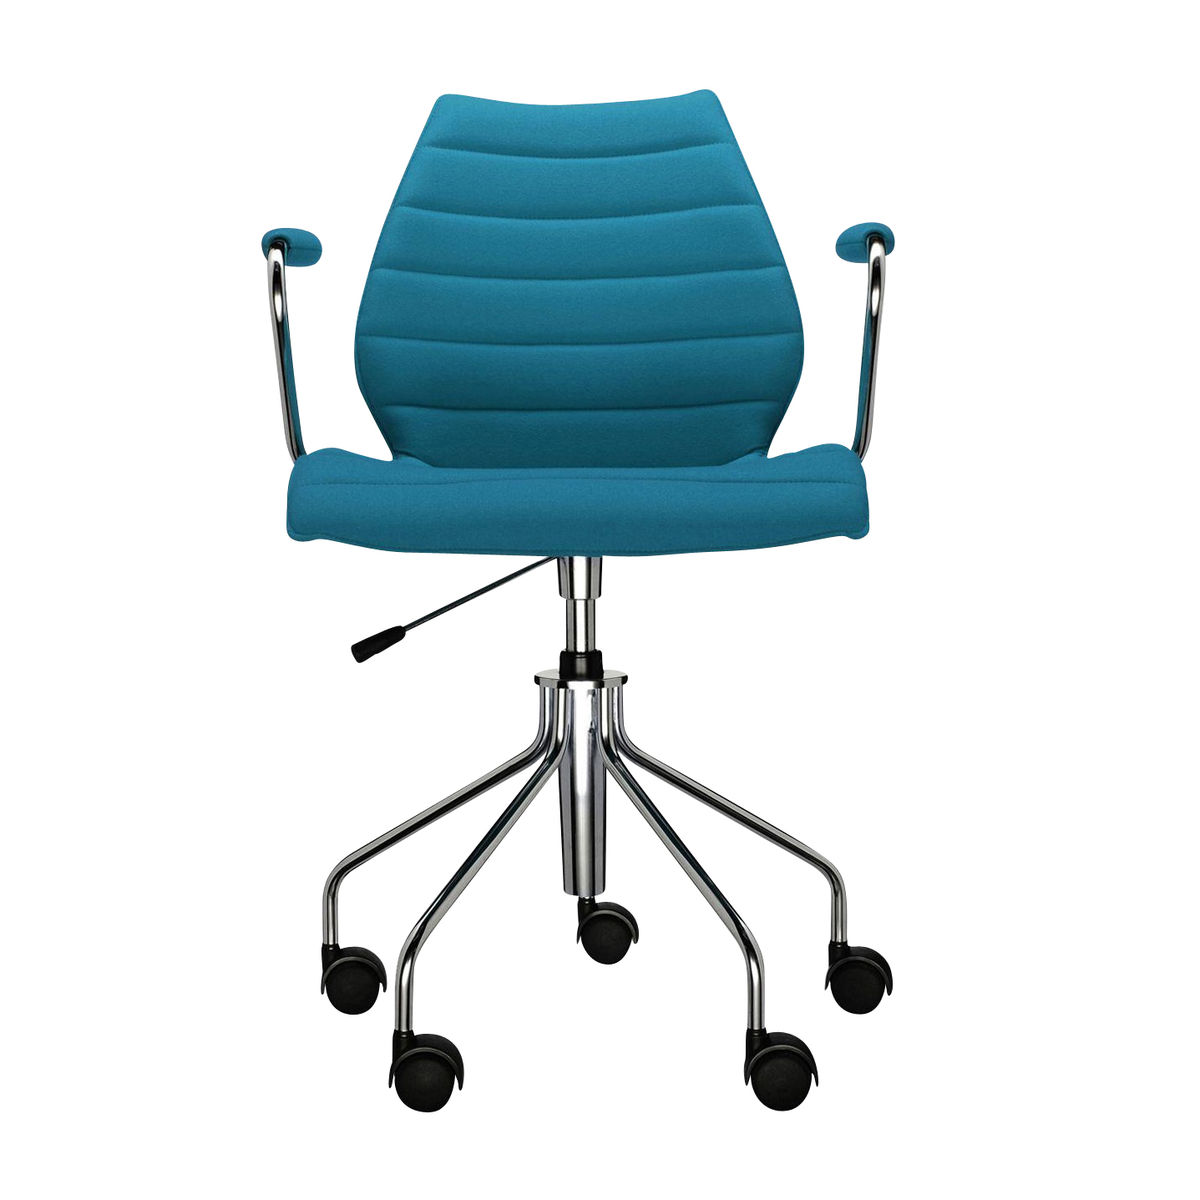 Kartell Maui Soft Office Chair With Armrests Petrol Blue Fabric Trevira Adjule